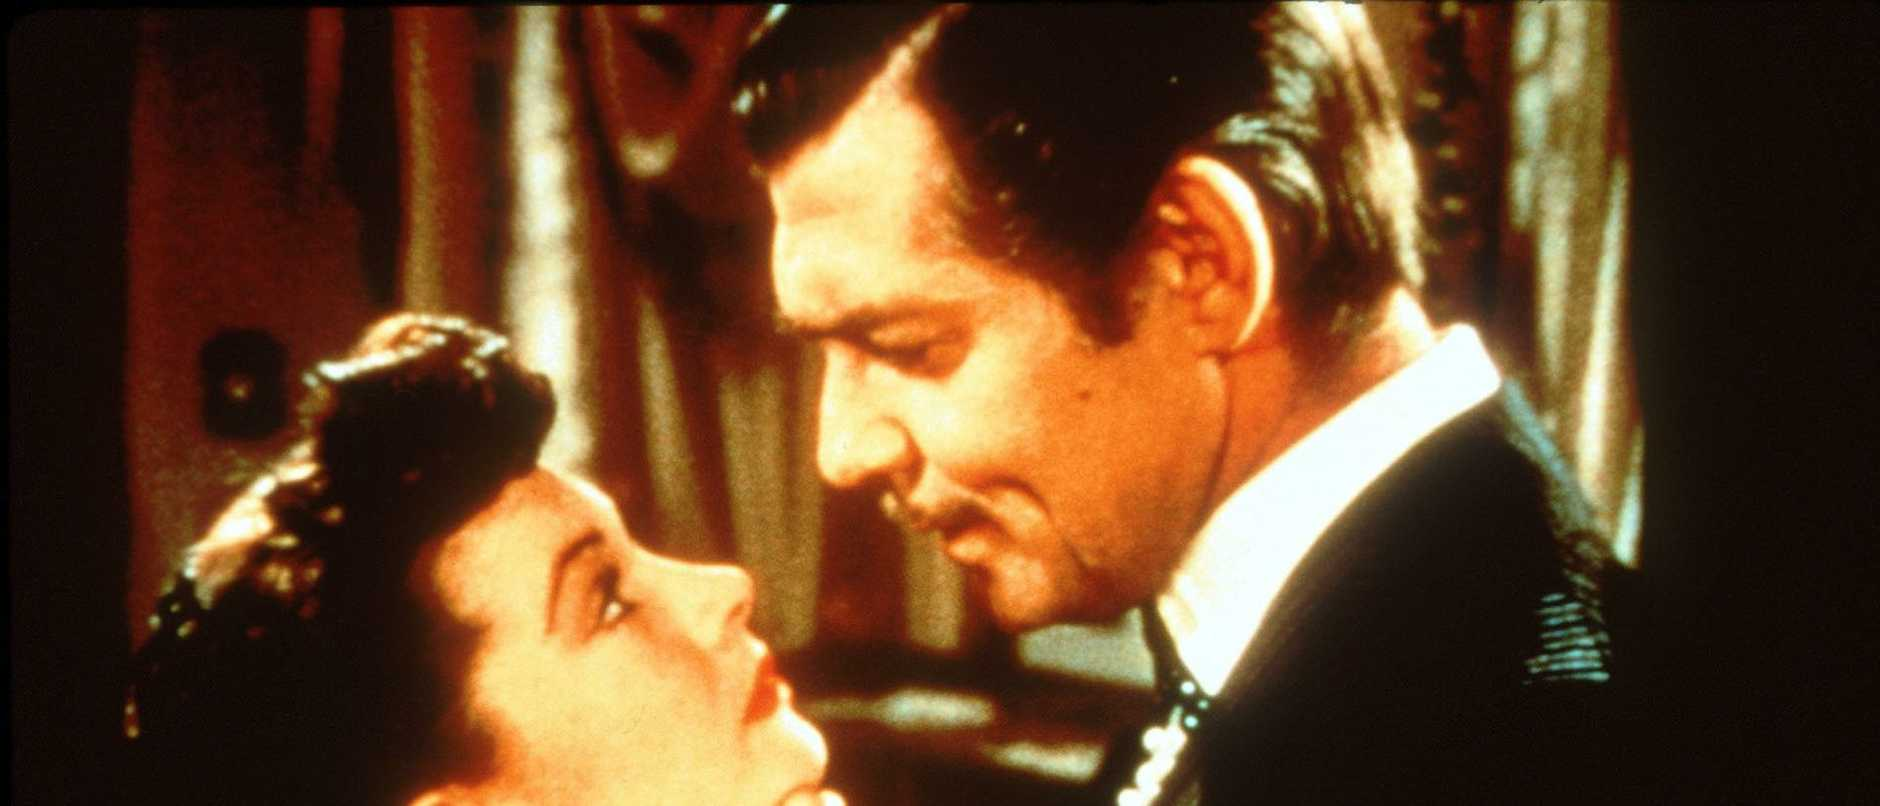 Actors Clark Gable and Vivien Leigh in the 1939 film 'Gone With The Wind'.